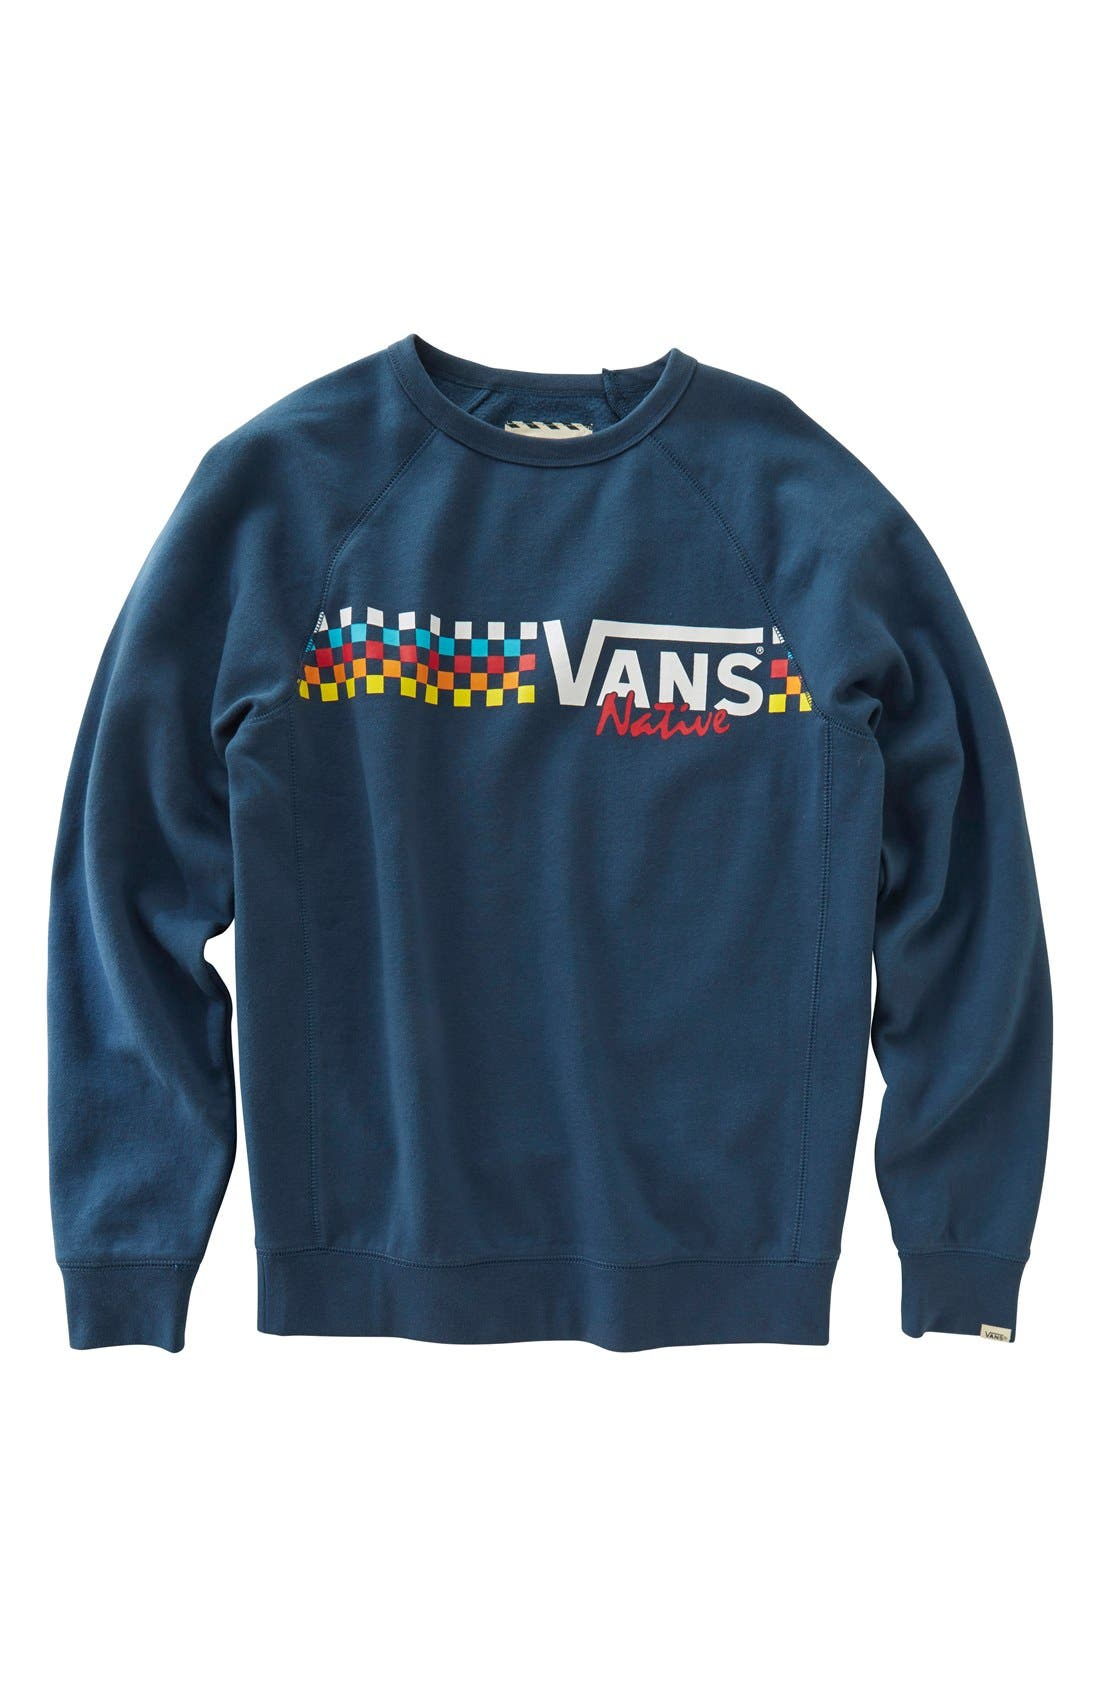 Main Image - Vans 'New Native' Screenprint Sweatshirt (Big Boys)